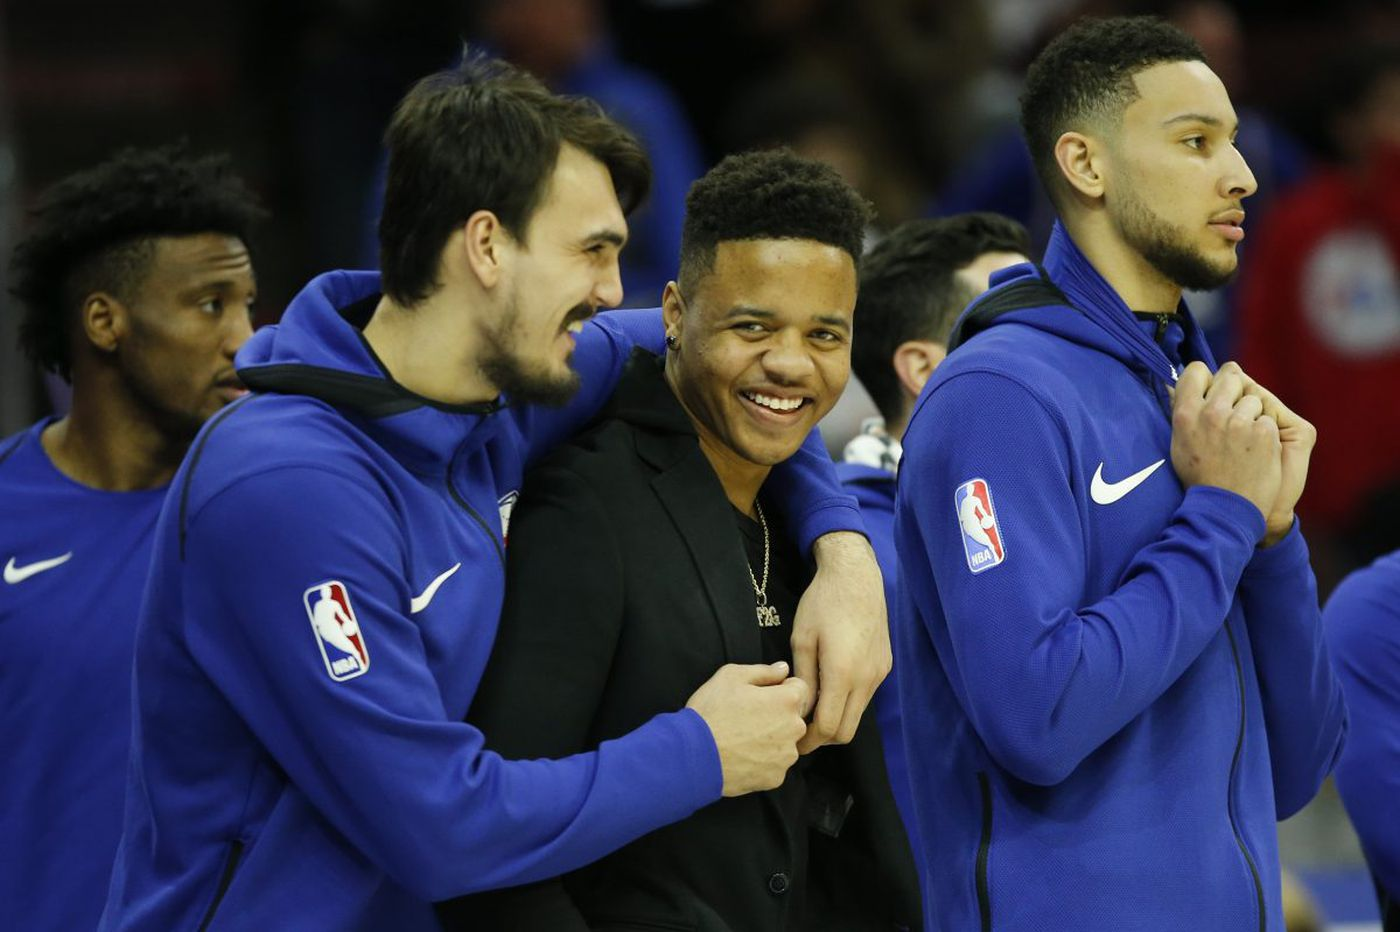 Sixers take London, Cosby returns to Philly, Pa. congressional map upheld | Morning Newsletter